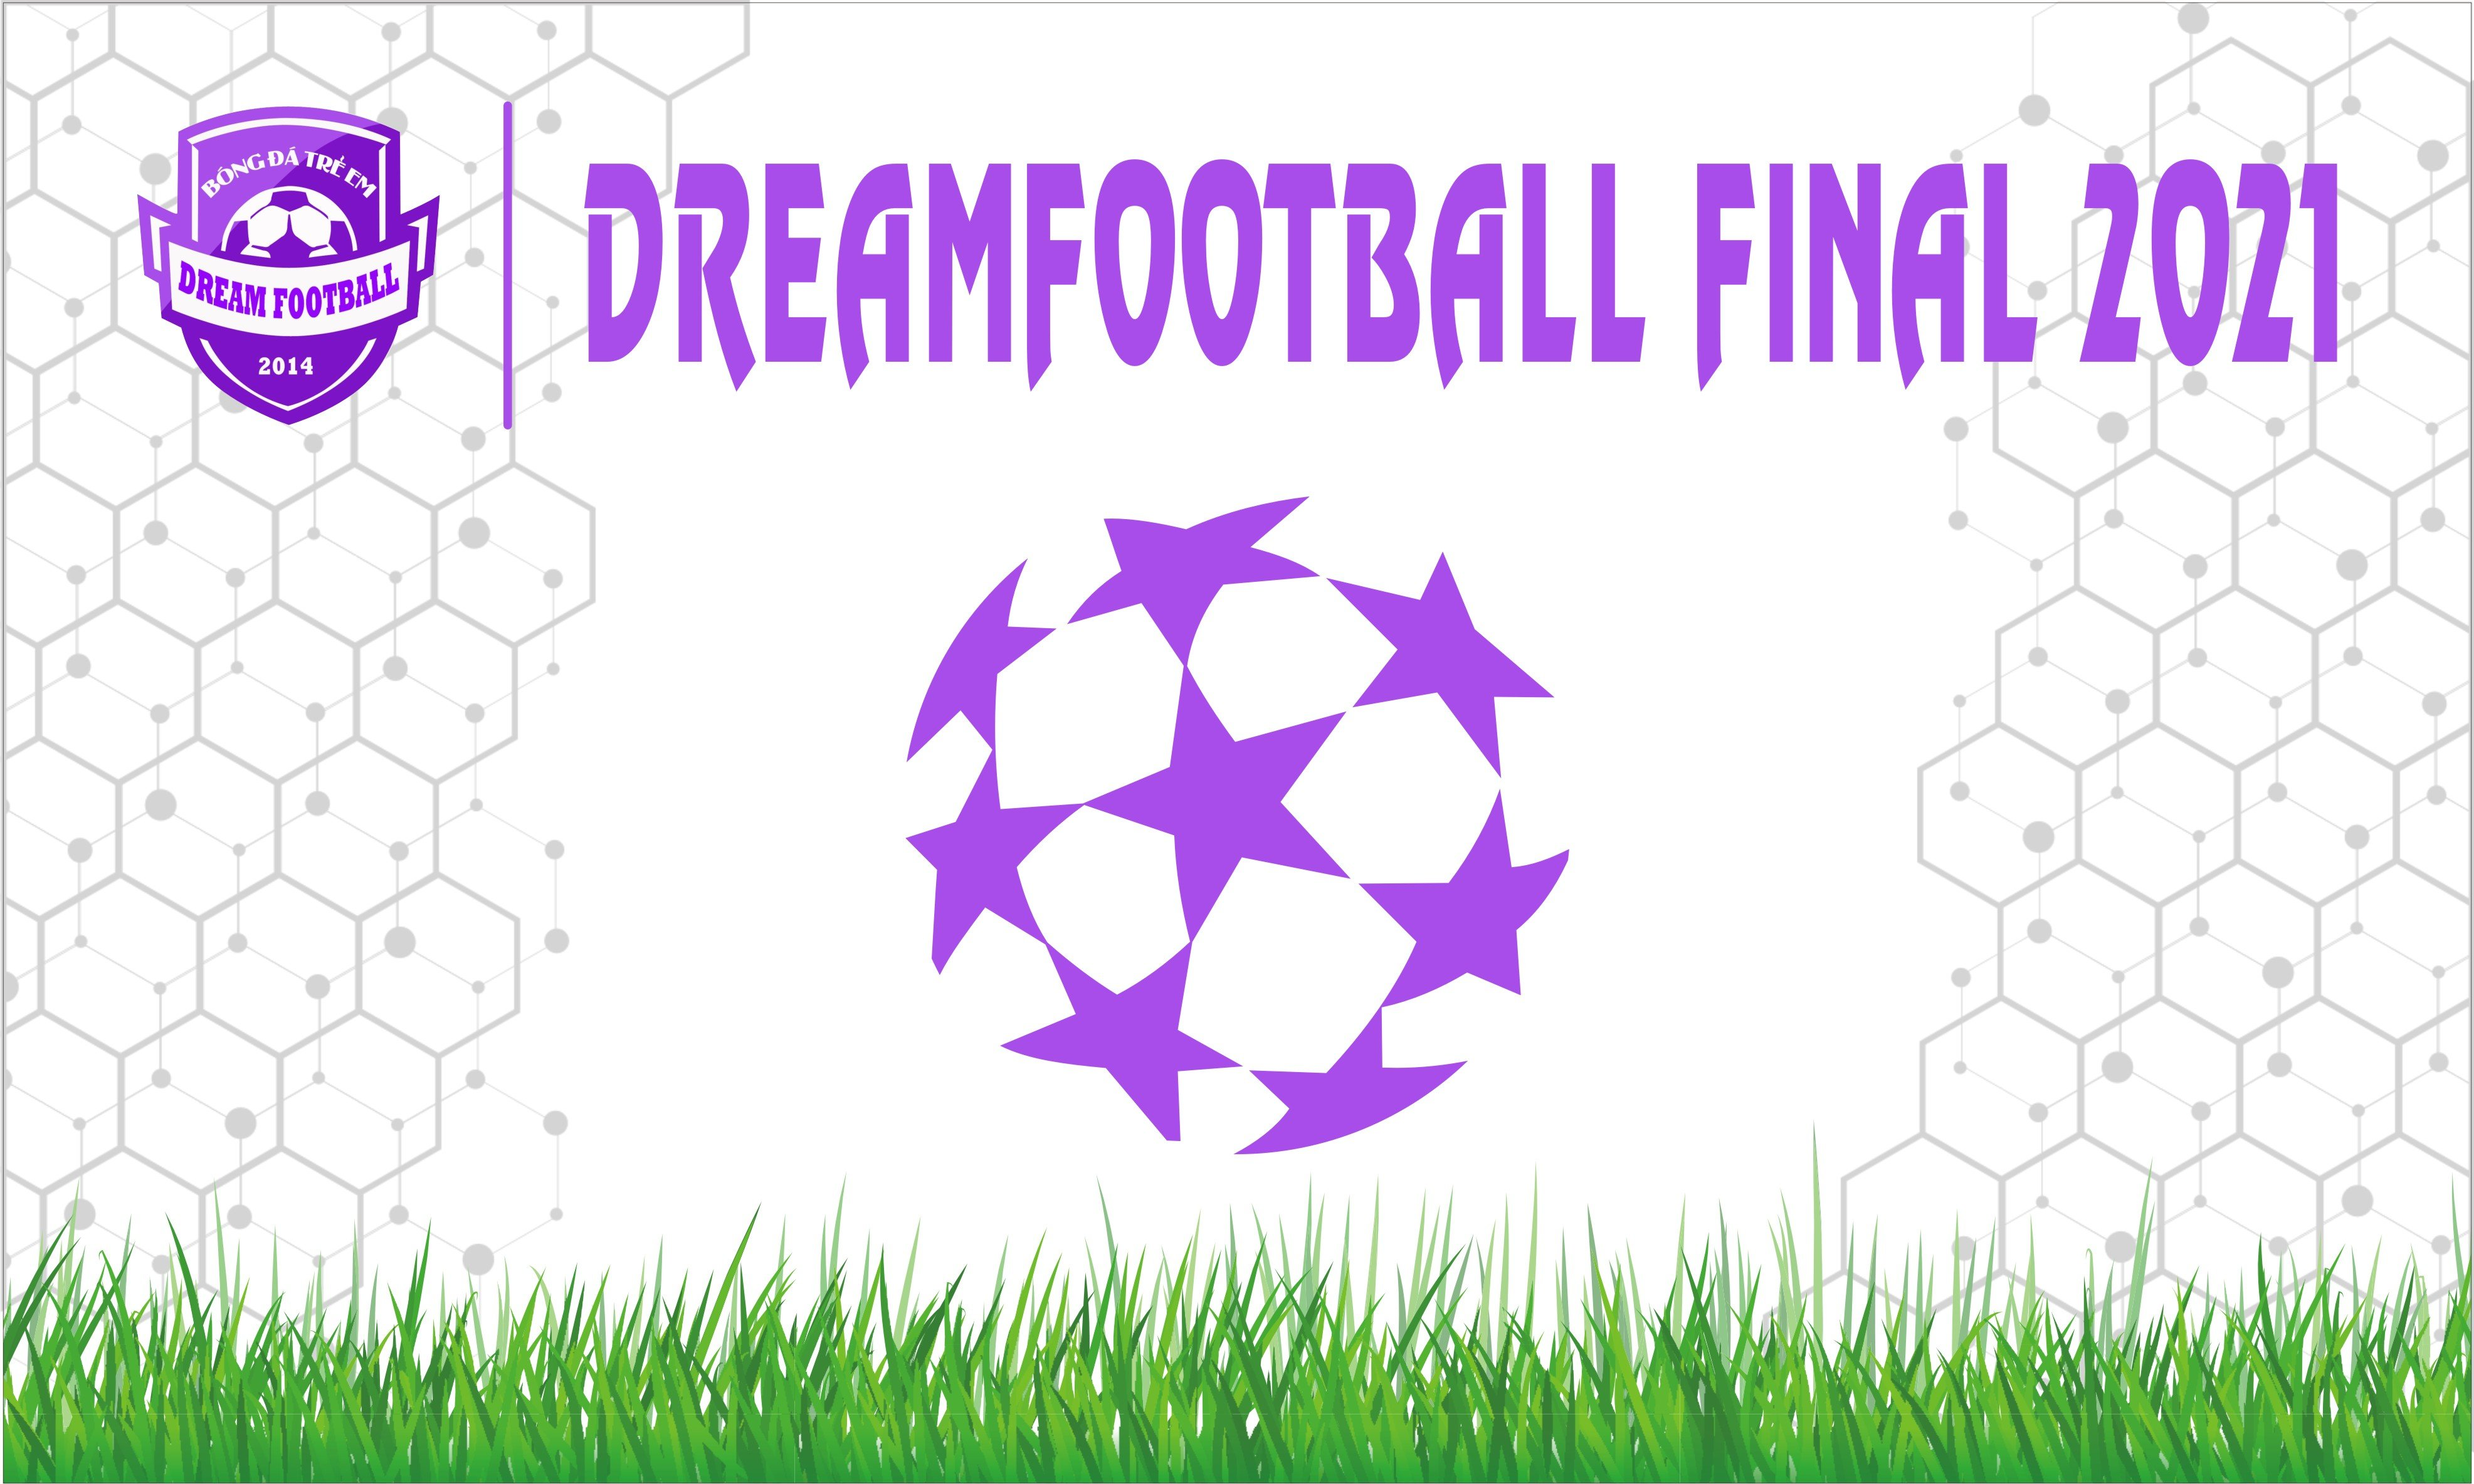 Giải Dreamfootball Final 2021